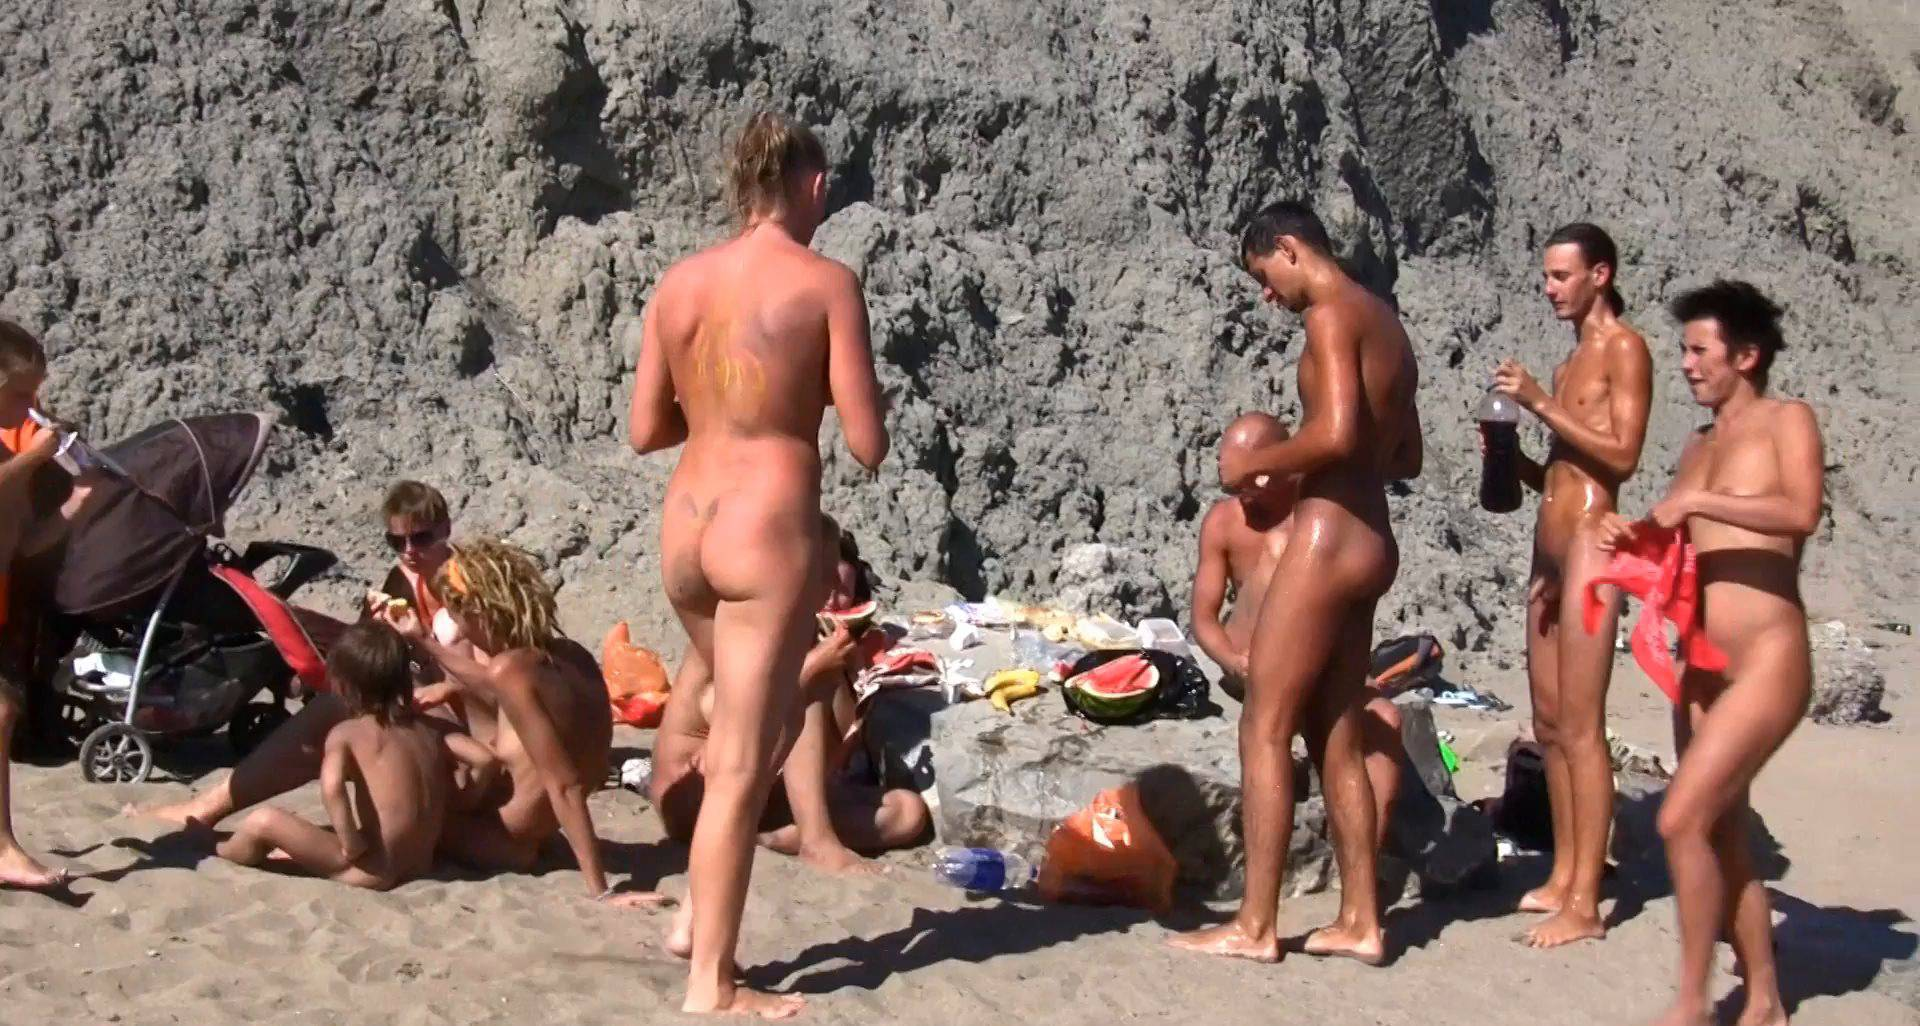 Nudist Videos Ukrainian Sea Boating - 2